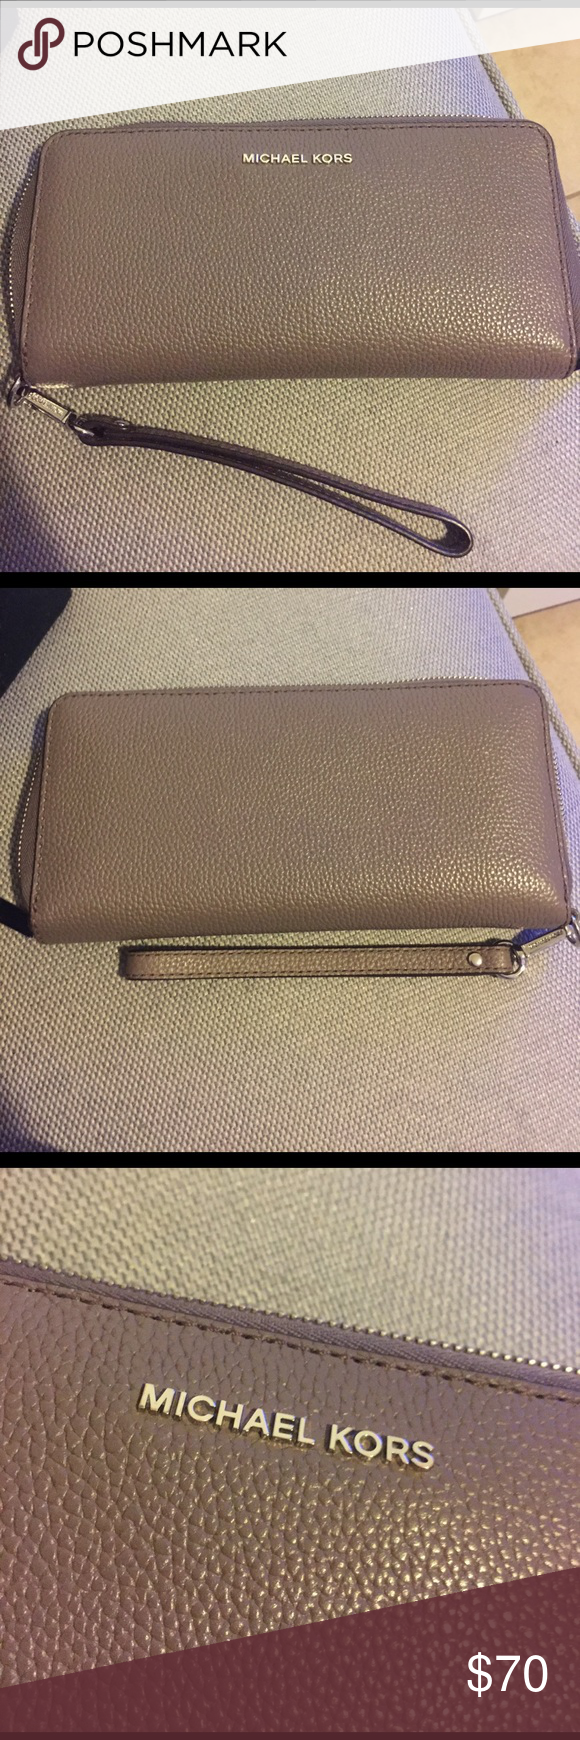 Michael Kors Wallet Color : Cinder . Very roomy wallet and I've only owned it for a month. In excellent condition. Michael Kors Bags Wallets